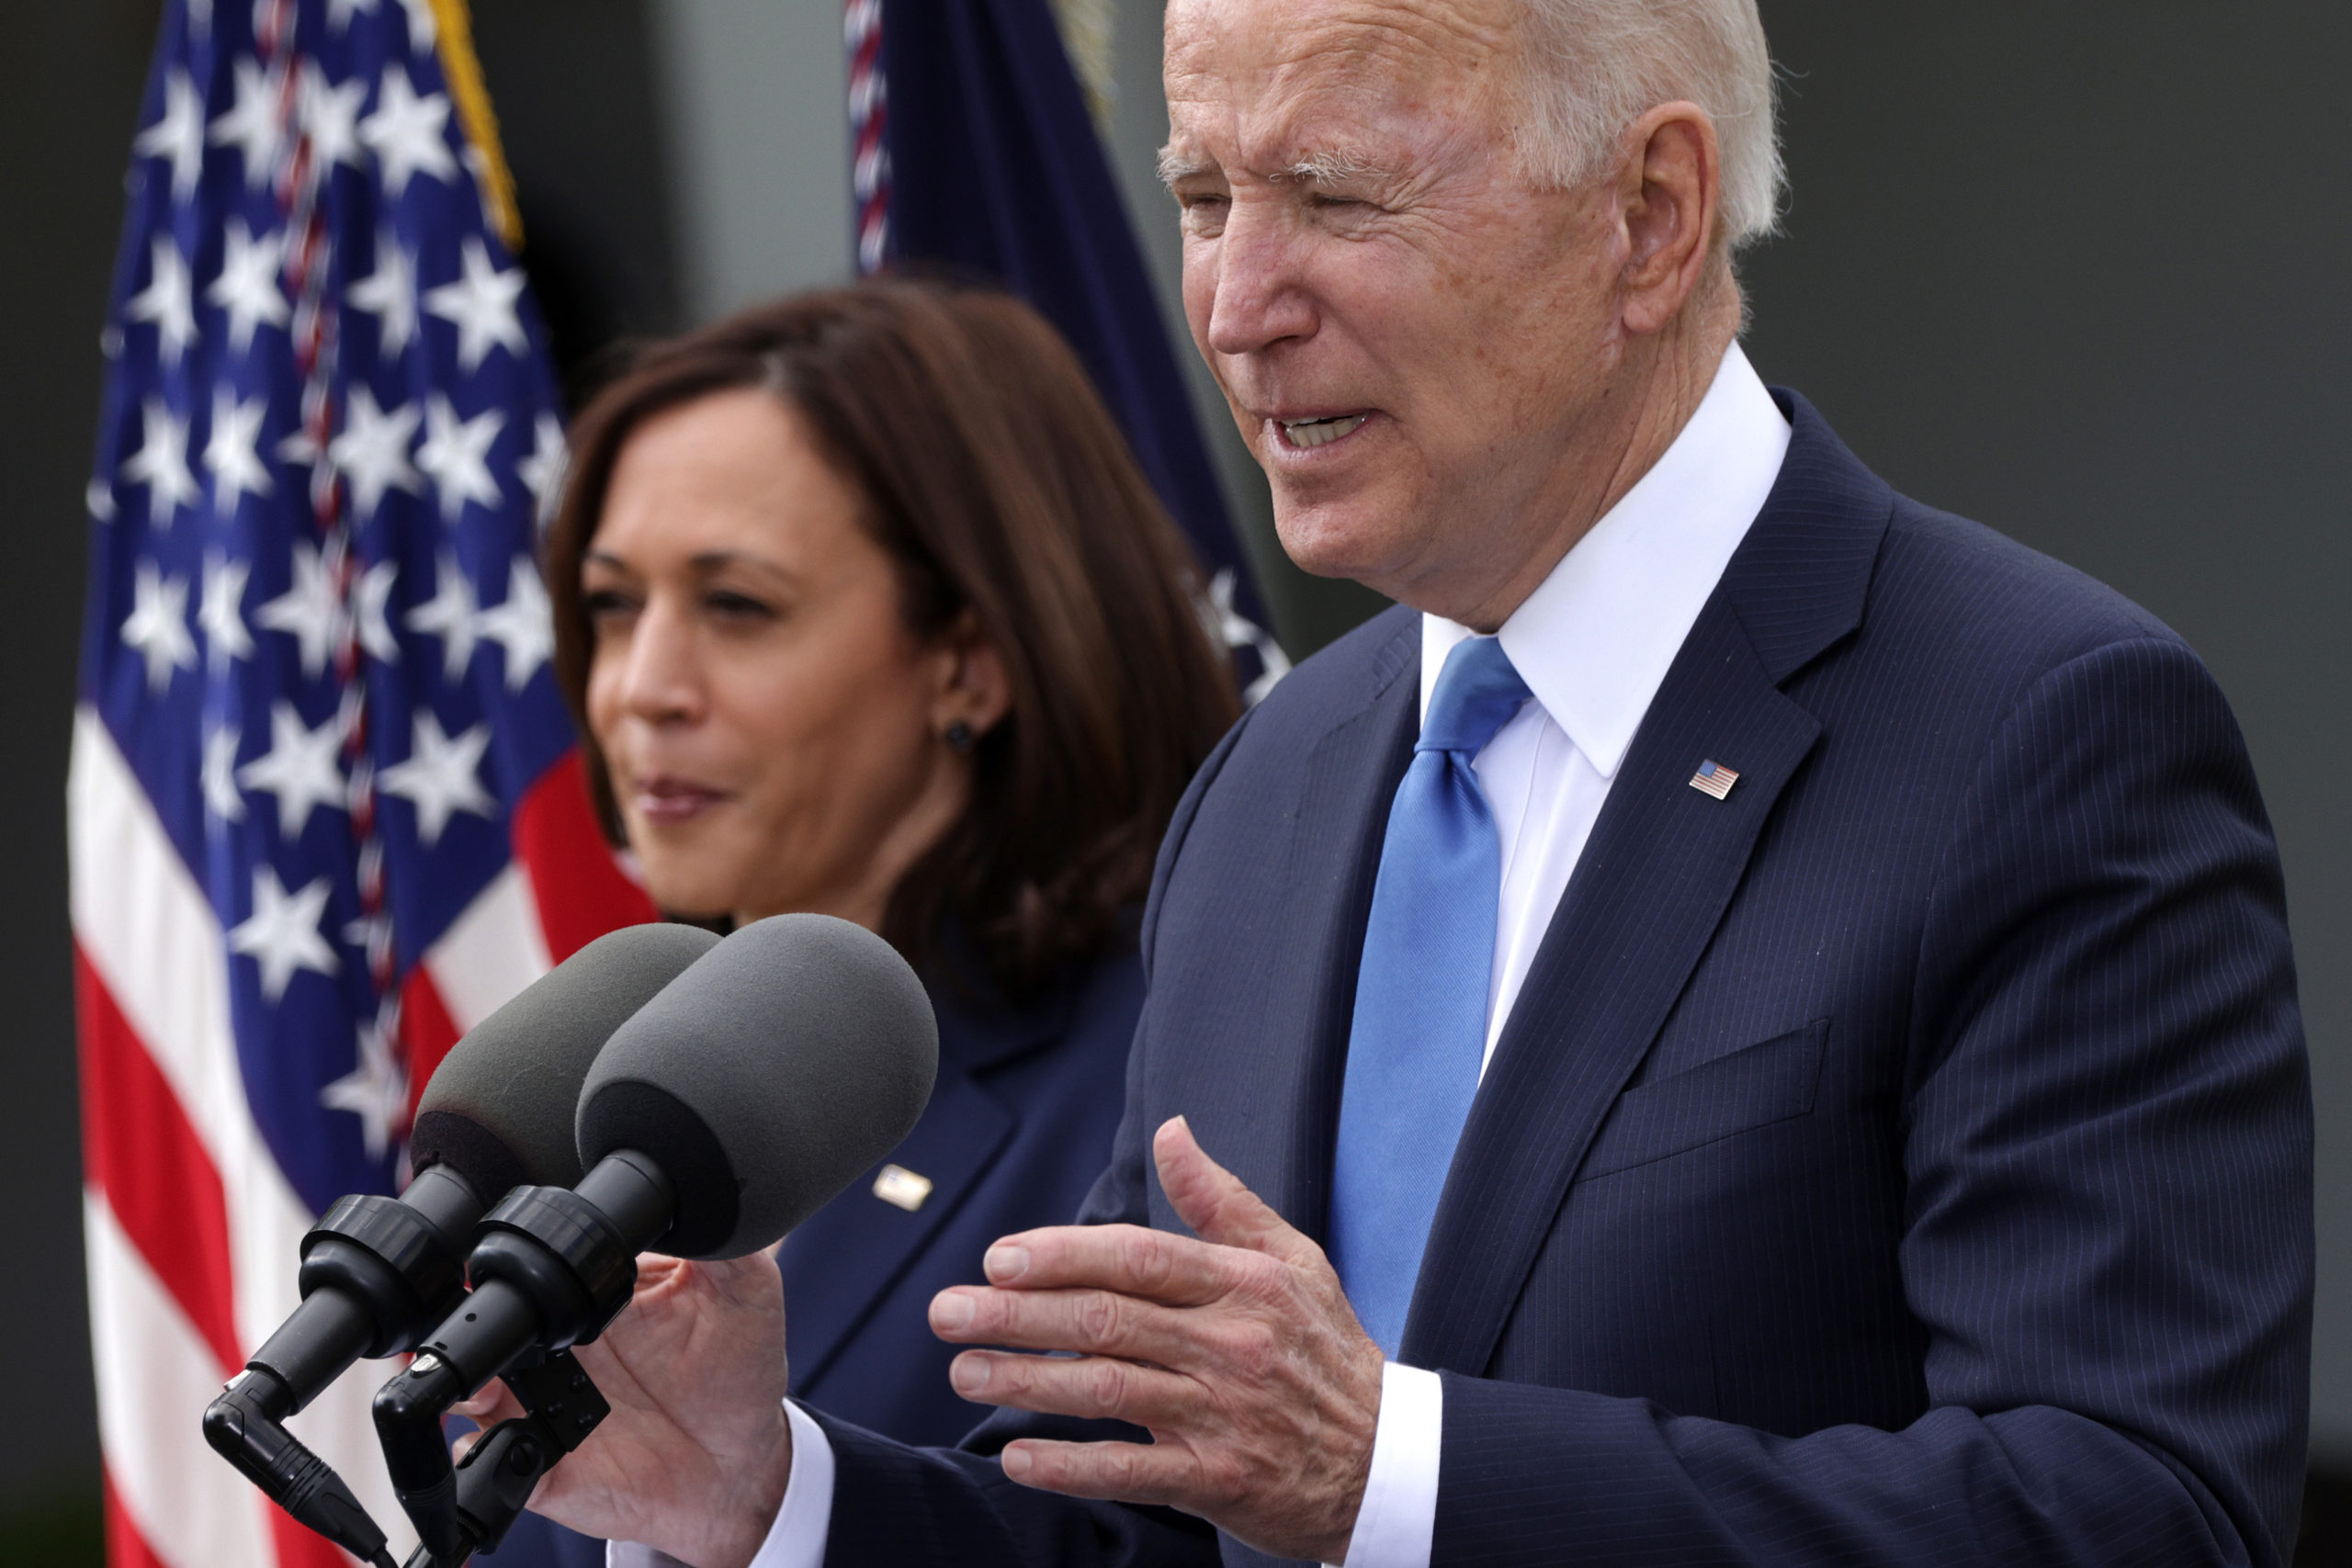 U.S. President Joe Biden delivers remarks on the COVID-19 response and vaccination program as Vice President Kamala Harris listens in the Rose Garden of the White House on May 13, 2021 in Washington, DC. (Alex Wong/Getty Images)